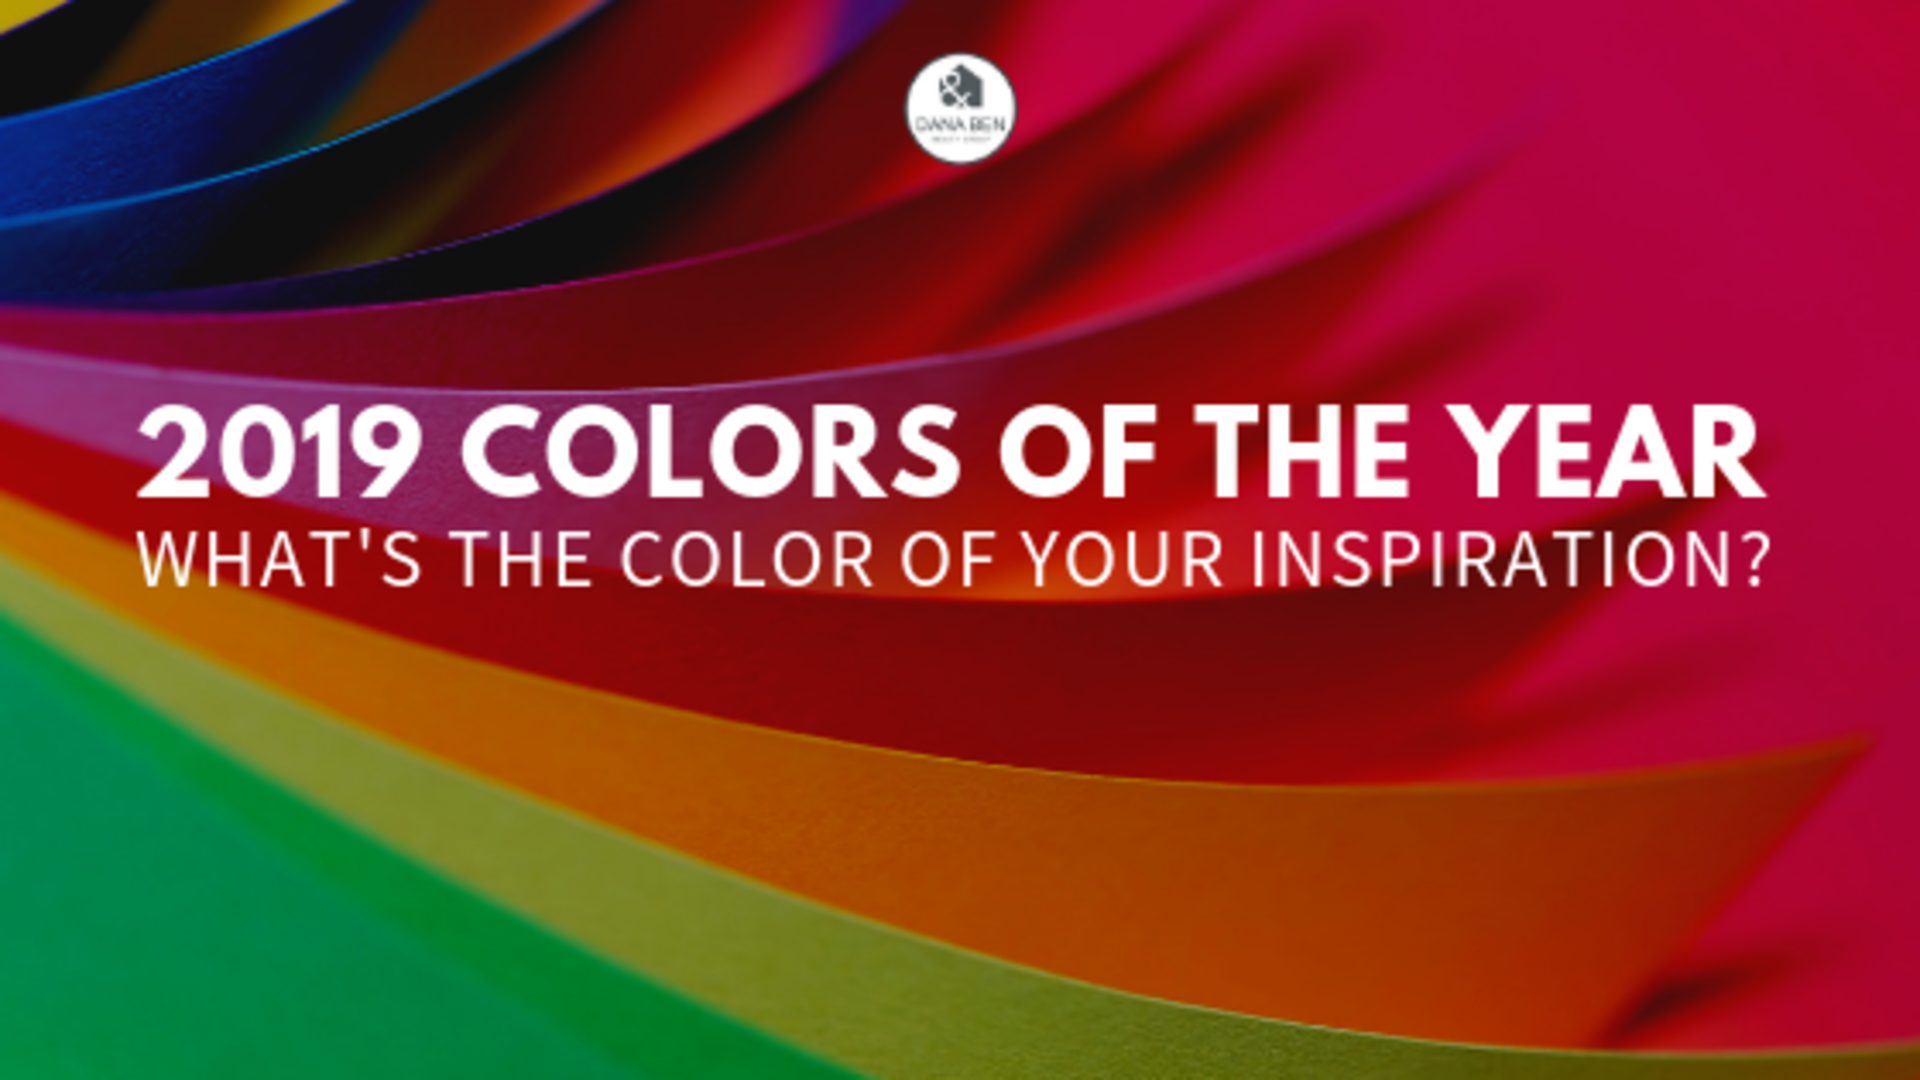 2019 Colors of the Year: What's the Color of Your Inspiration?